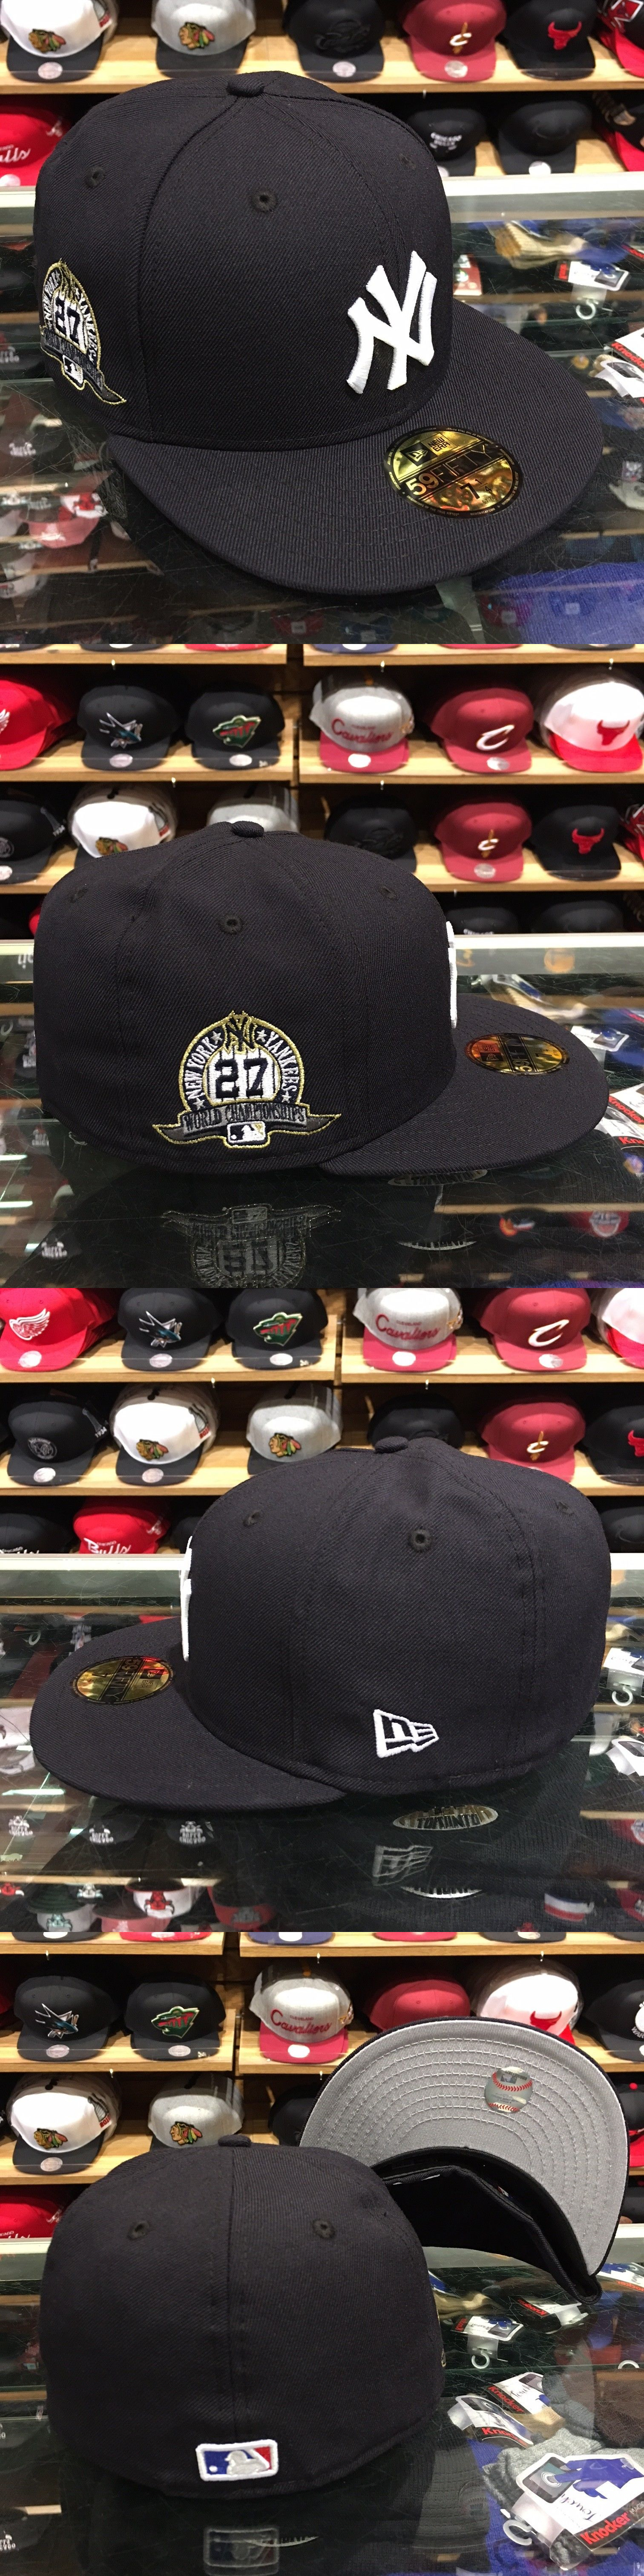 huge selection of b13a4 3c432 ... authentic hats 52365 new era new york yankees fitted hat cap 27 world  series championships patch